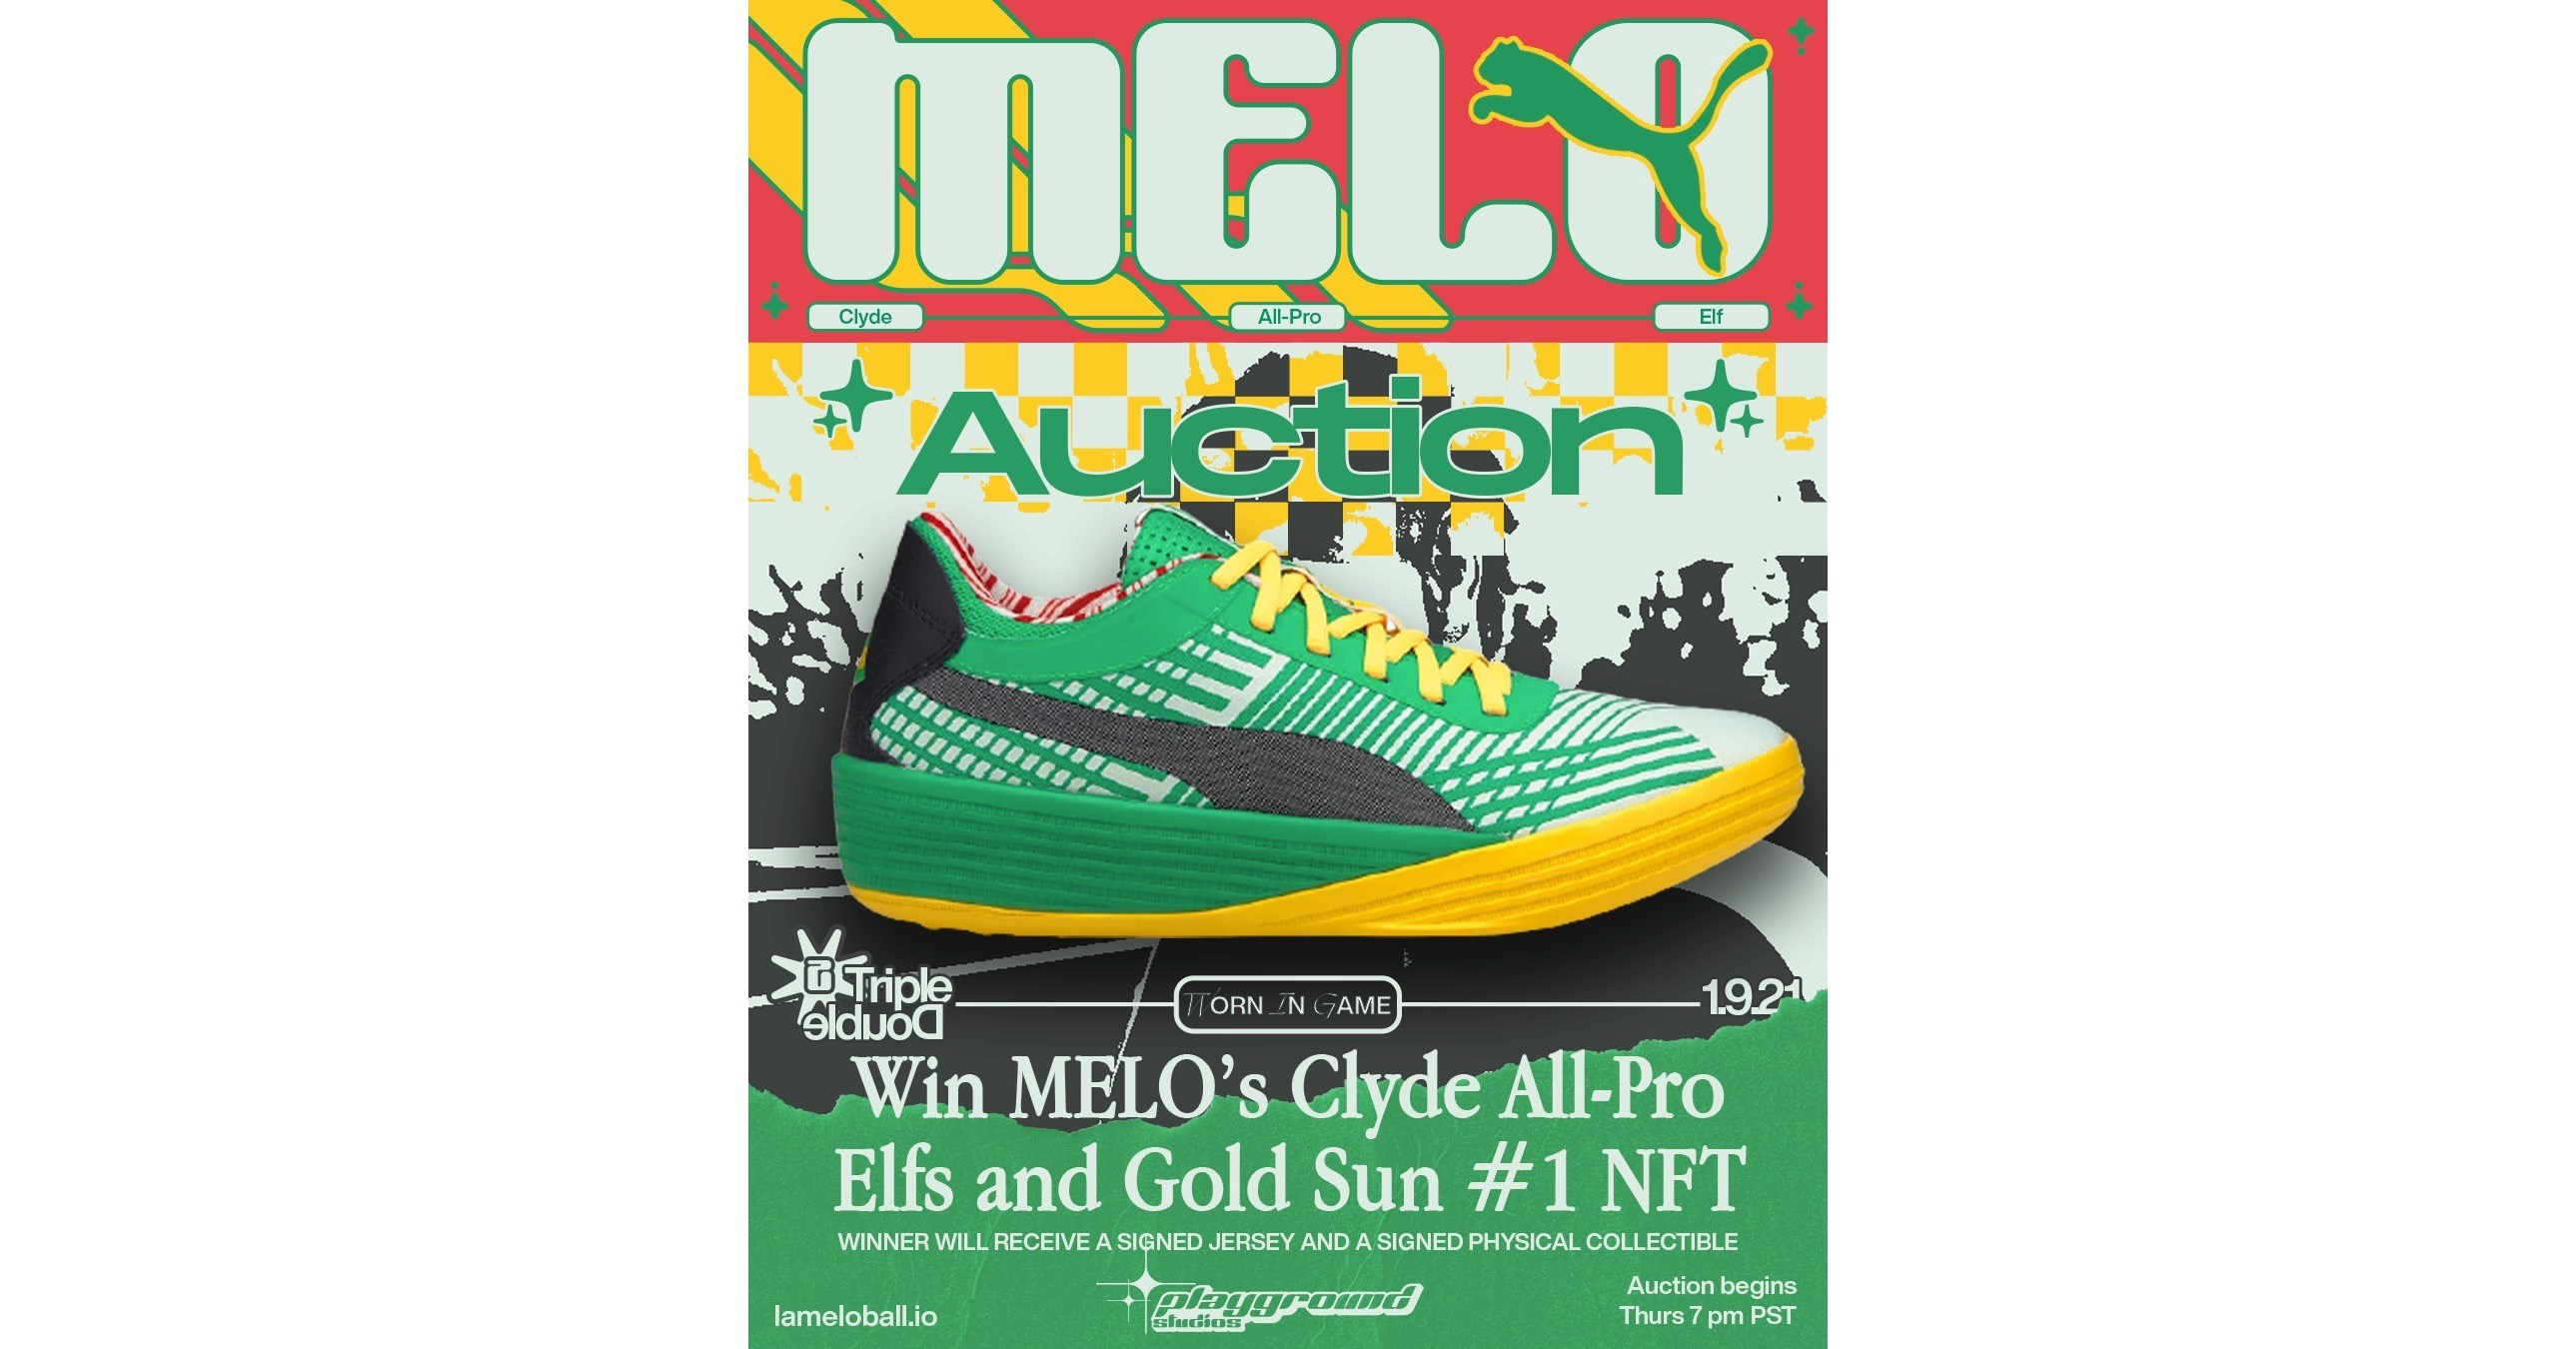 NBA Rookie of the Year: LaMelo Ball to auction off autographed triple-double shoes tied to #1 'GOLD SUN' NFT